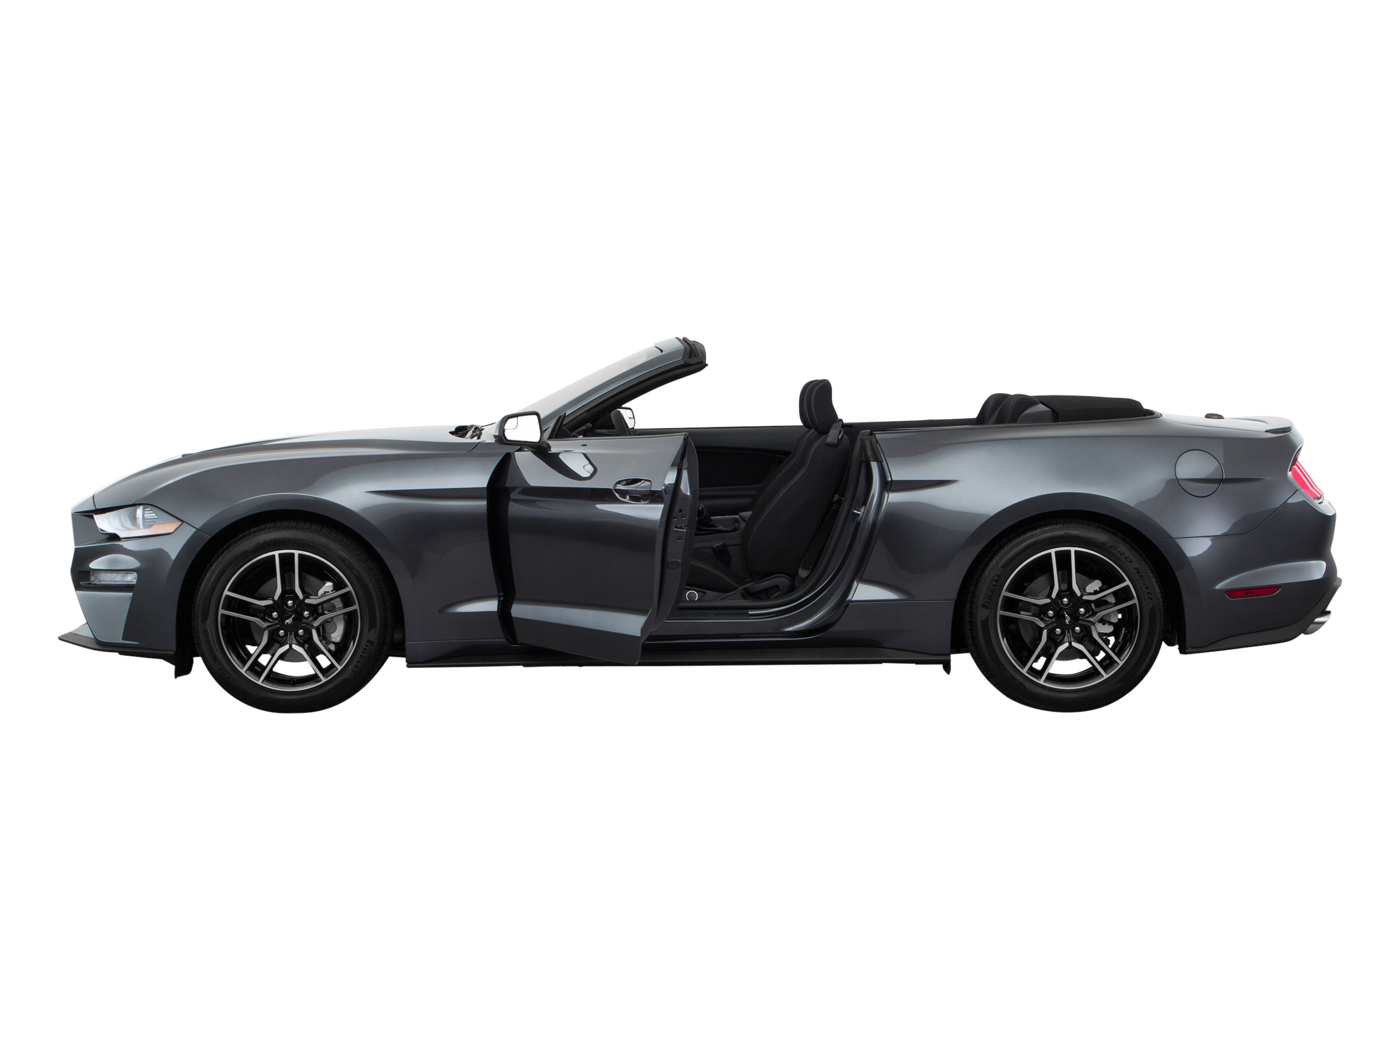 2019 Ford Mustang Ecoboost Convertible Side View